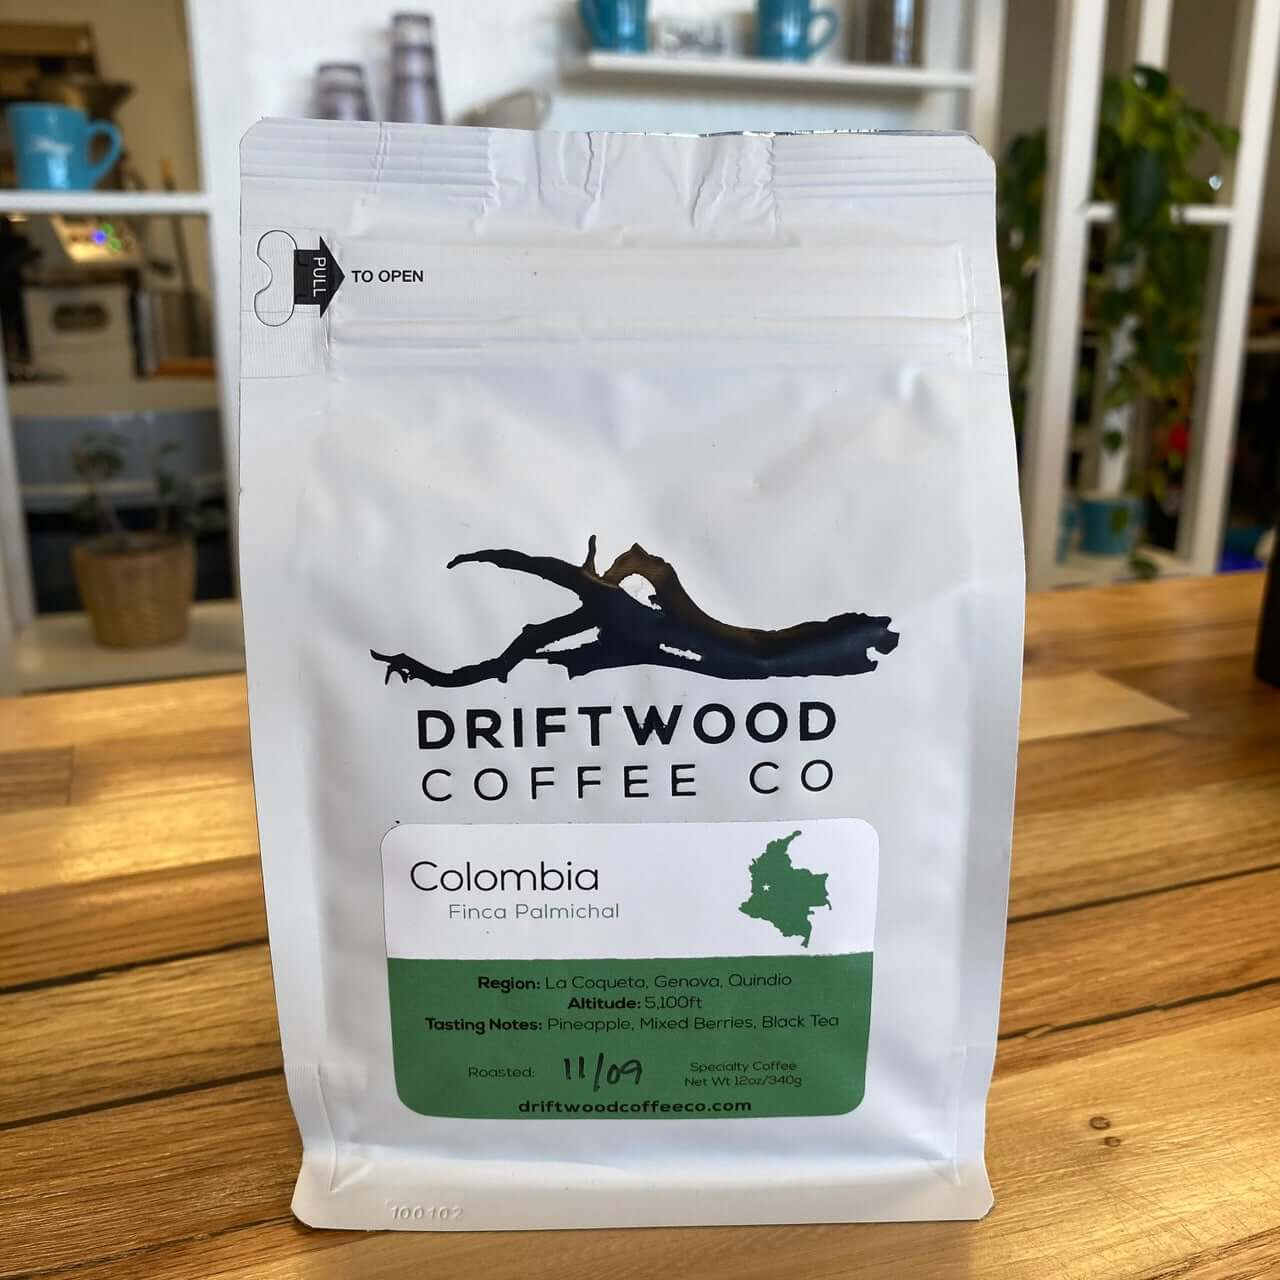 Colombia Finca Palmichal from Driftwood Coffee Co